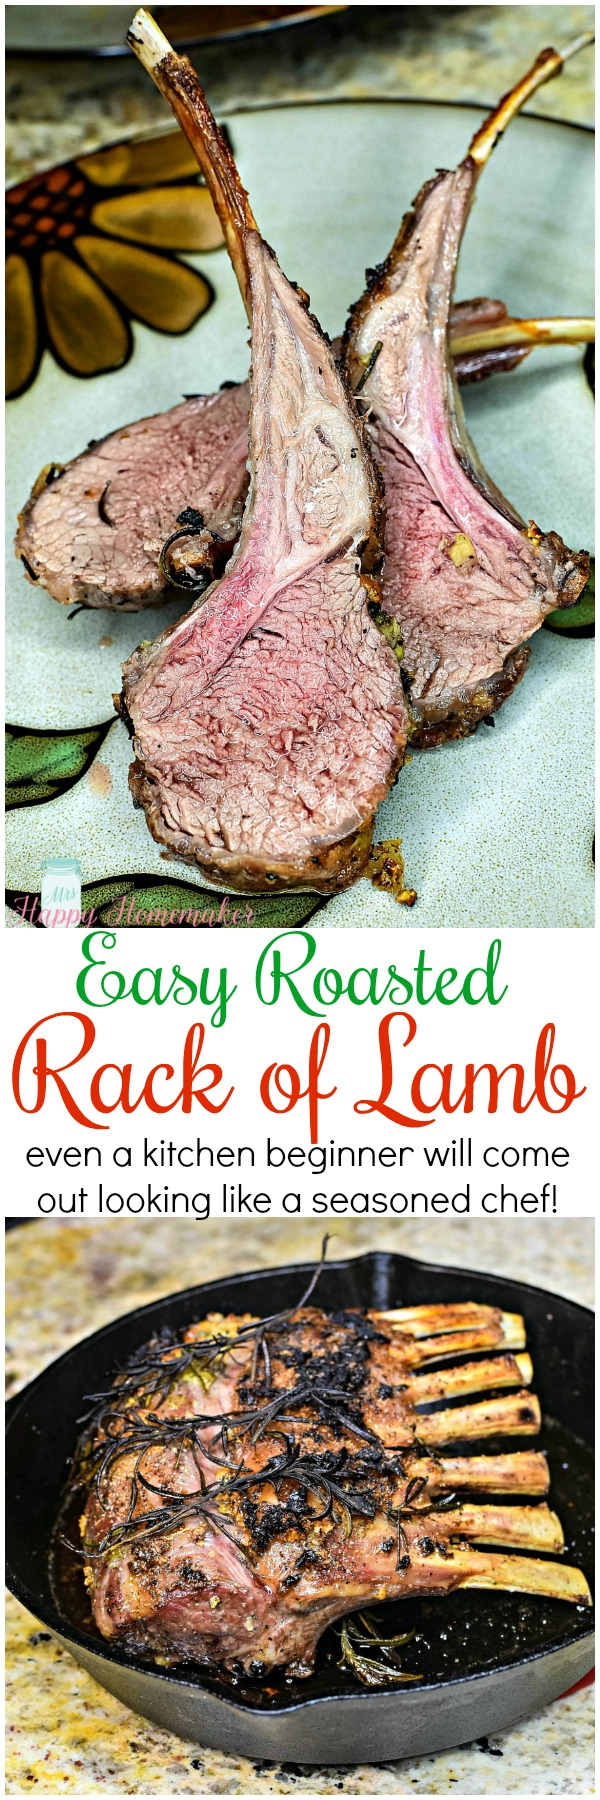 This Easy Roasted Rack of Lamb comes out perfect each & every time with very minimal effort. Even a kitchen beginner can come out looking like a seasoned chef with this simple recipe.